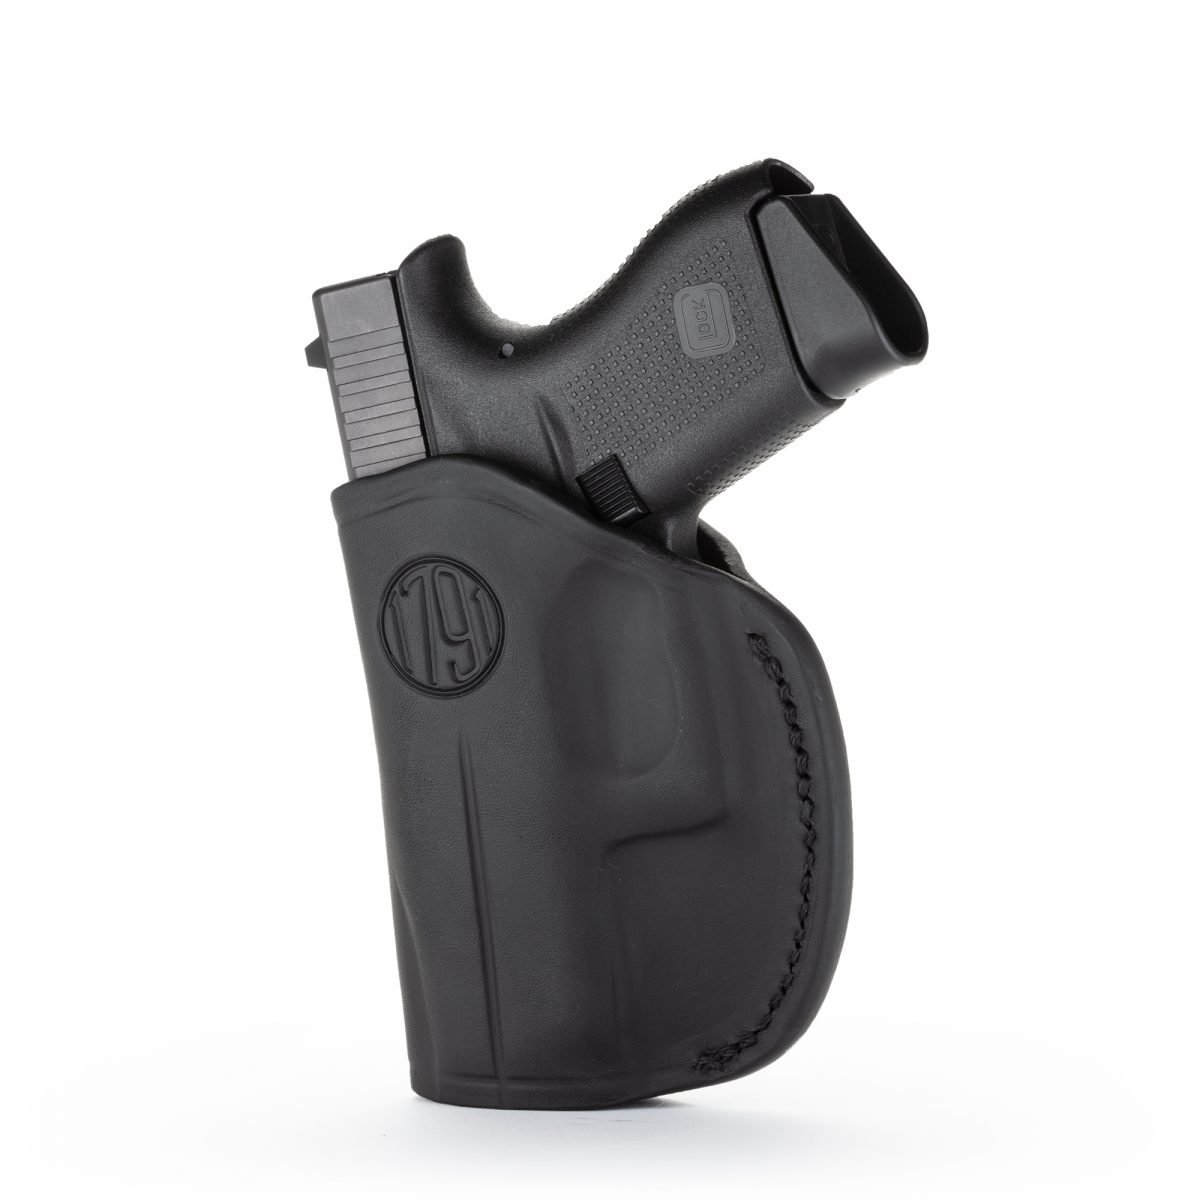 Walther CCP Concealed Carry Fit Inside the Waistband IWB,Concealed Gun Holster